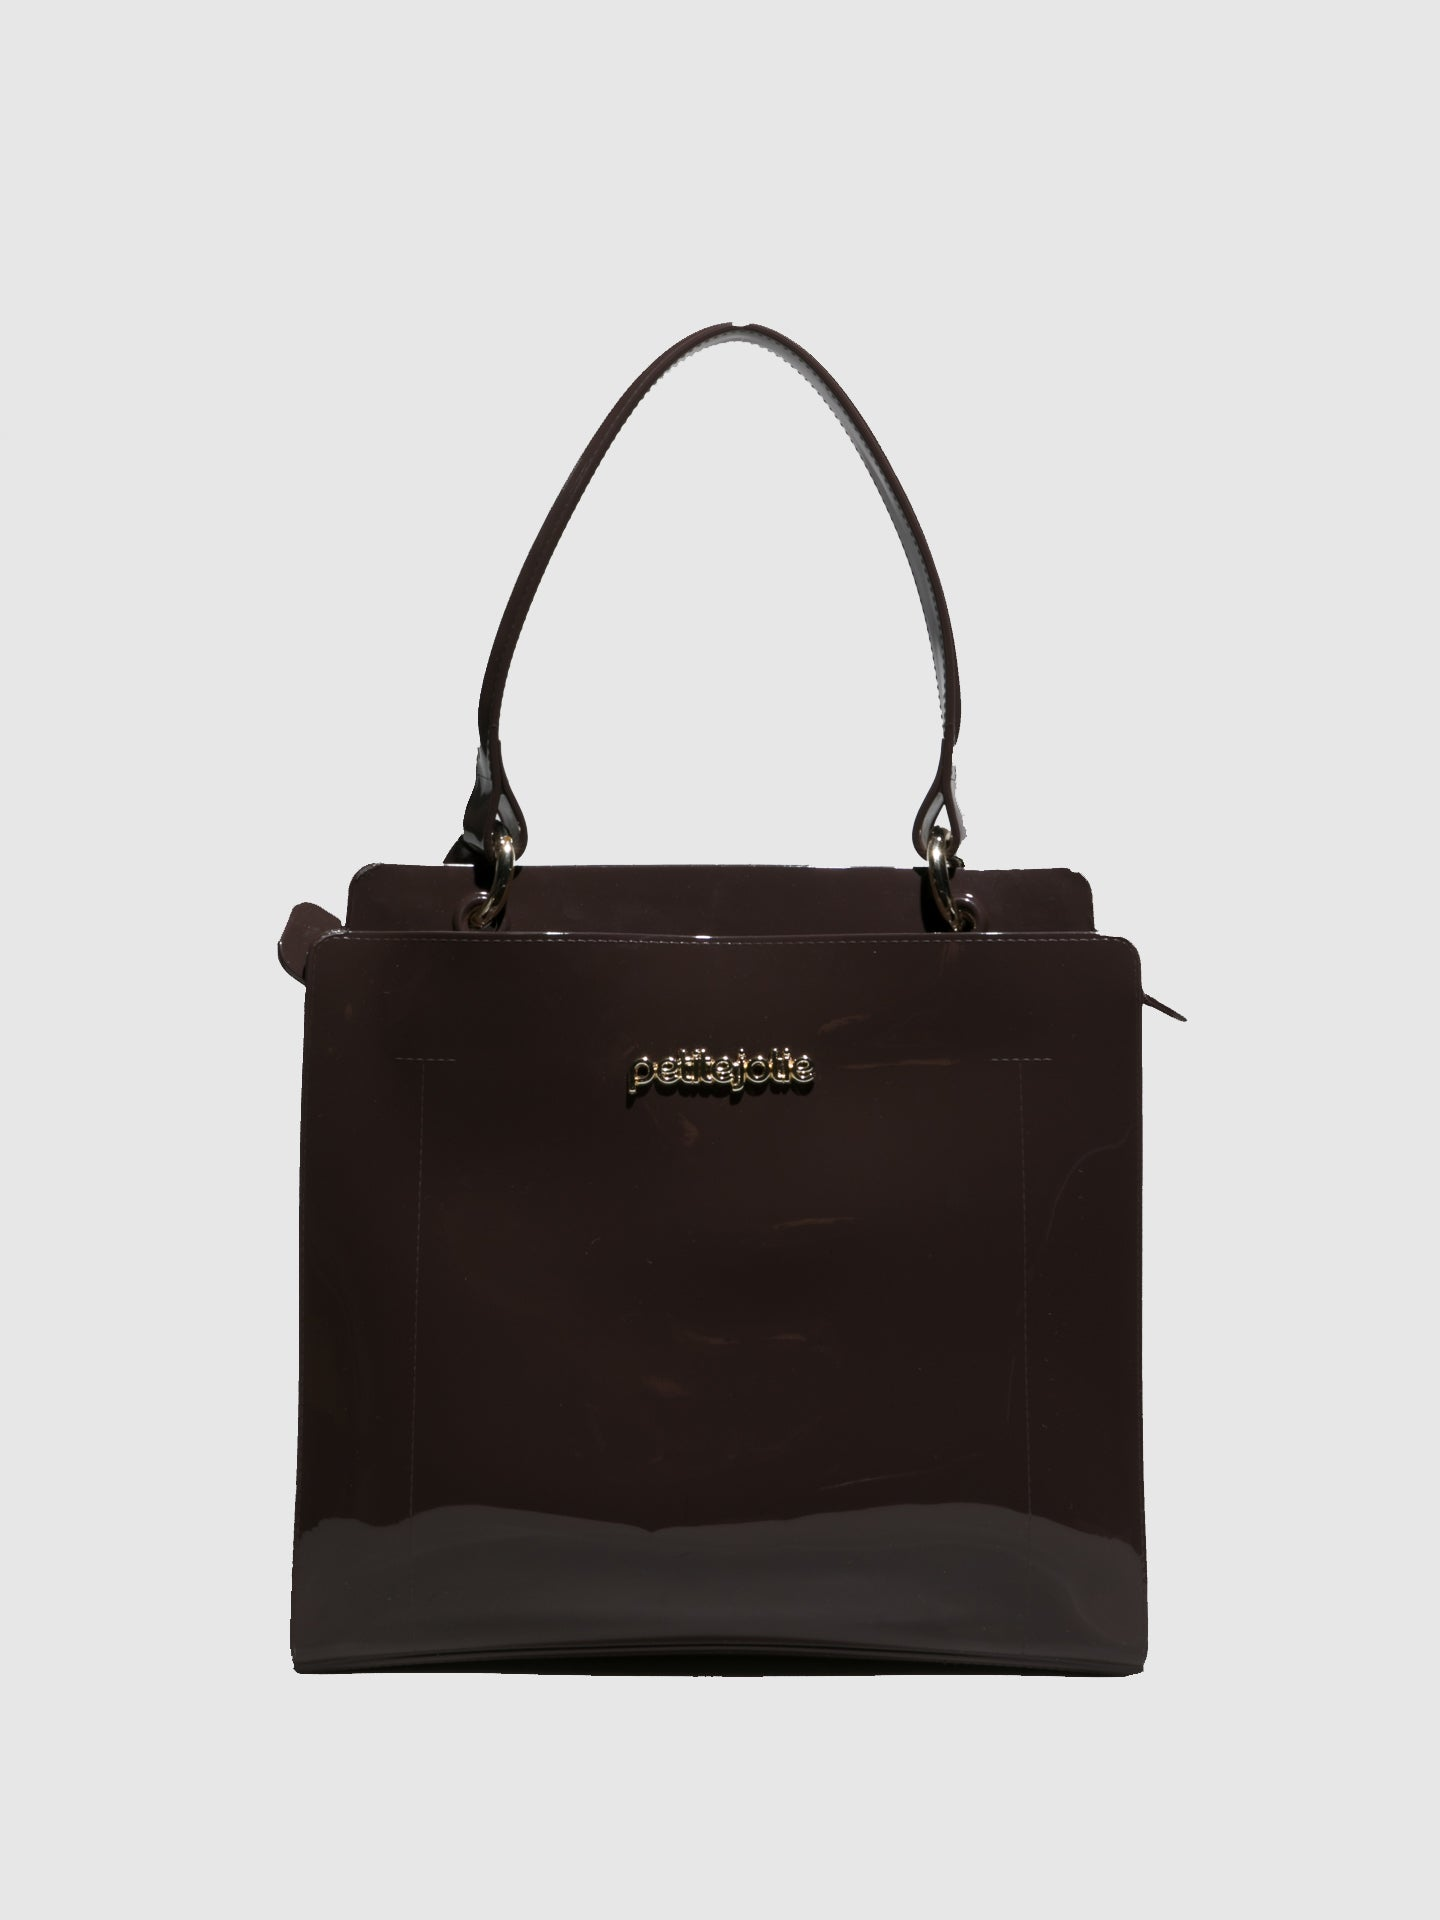 Petite Jolie By Parodi Brown Handbag